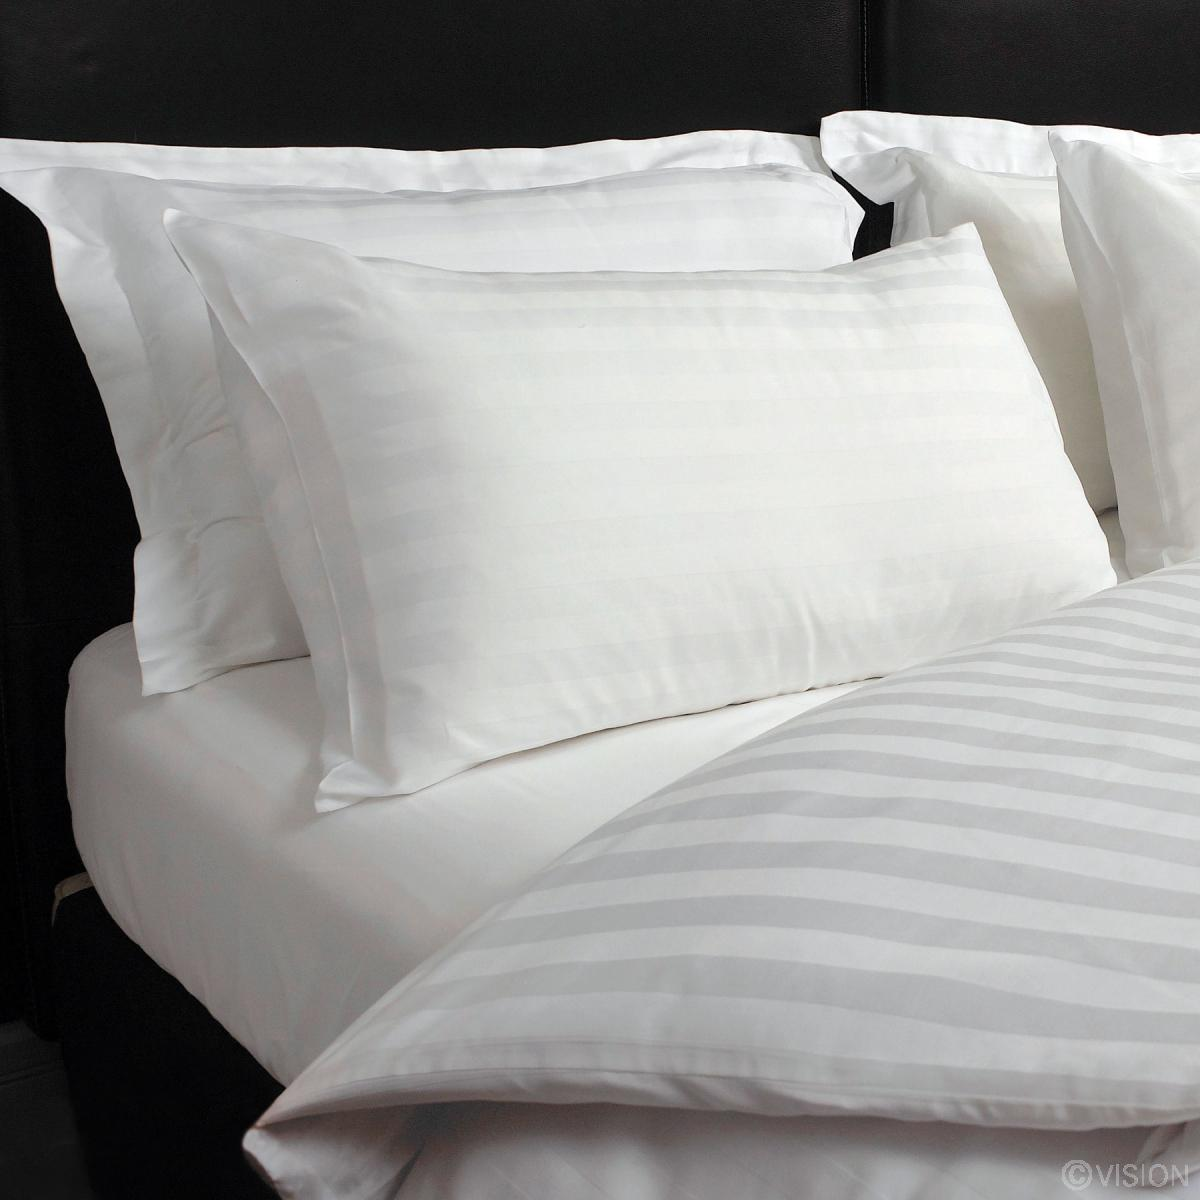 Luxury Satin Striped Pillowcases With Cotton Rich Blend